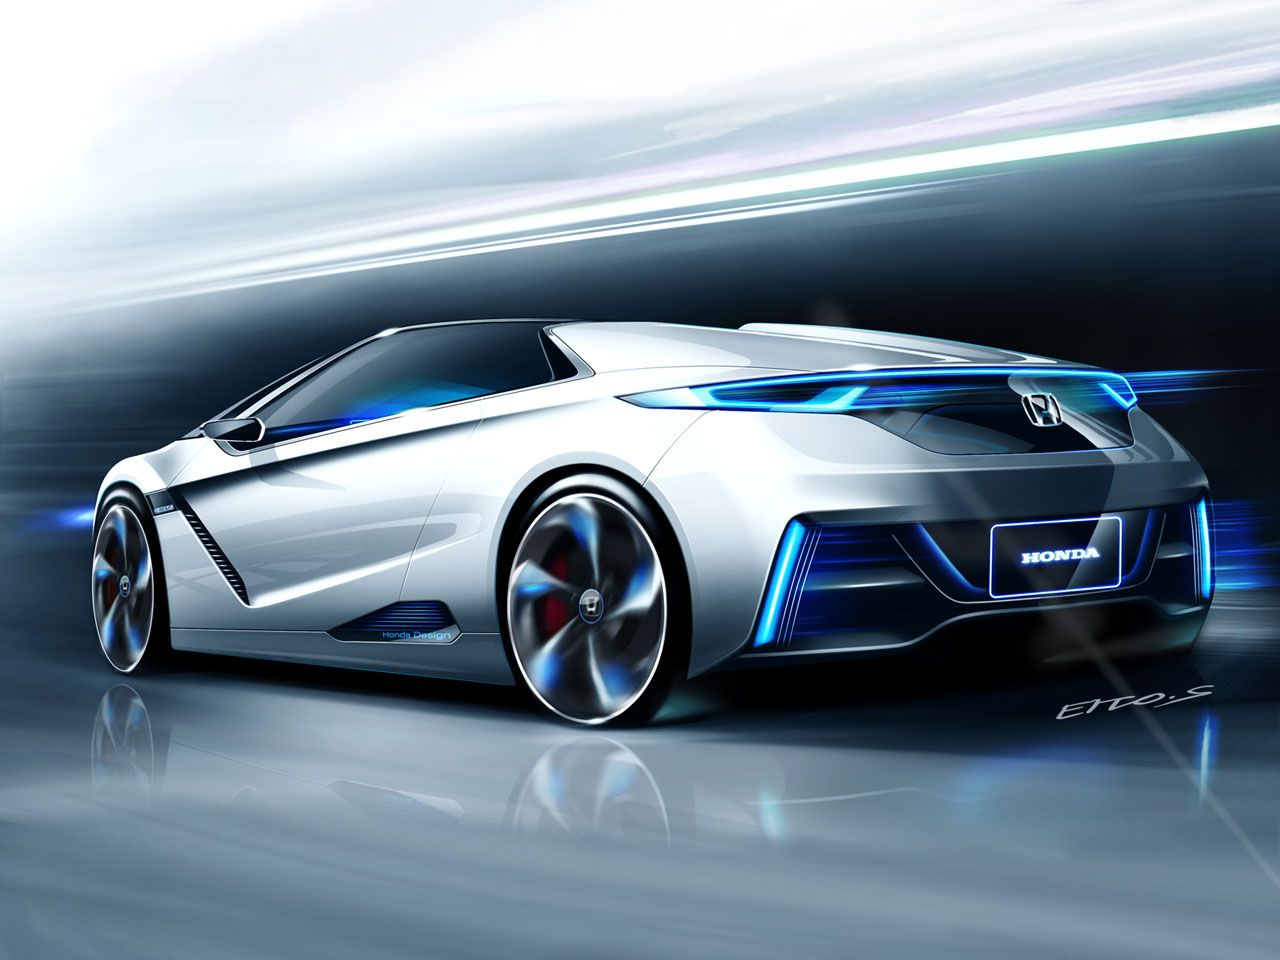 Superbe Set To Debut At The 2011 Tokyo Motor Show, The Honda EV STER Concept (First  Announced As The Small Sports EV Concept) Is A Compact Two Seater Sportscar  ...